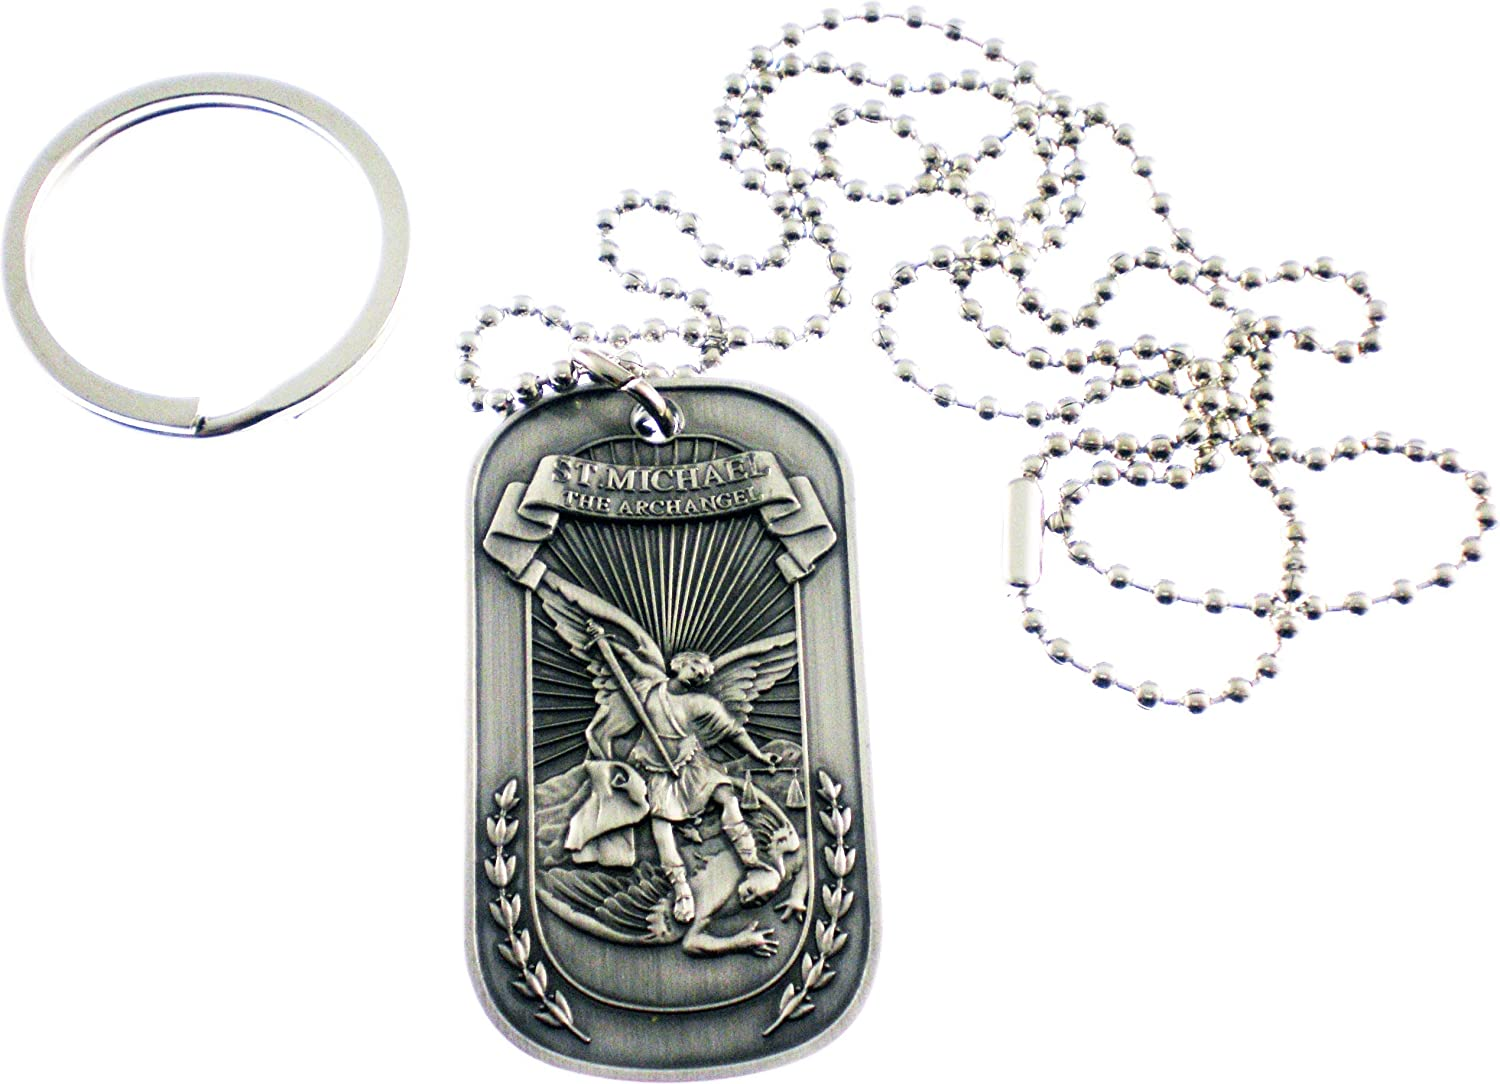 Christian Christ Religion Jesus St Michael Archangel Double Sided Pewter Logo Symbols - All Metal Military Dog Tag Luggage Tag Key Chain Metal Chain Necklace